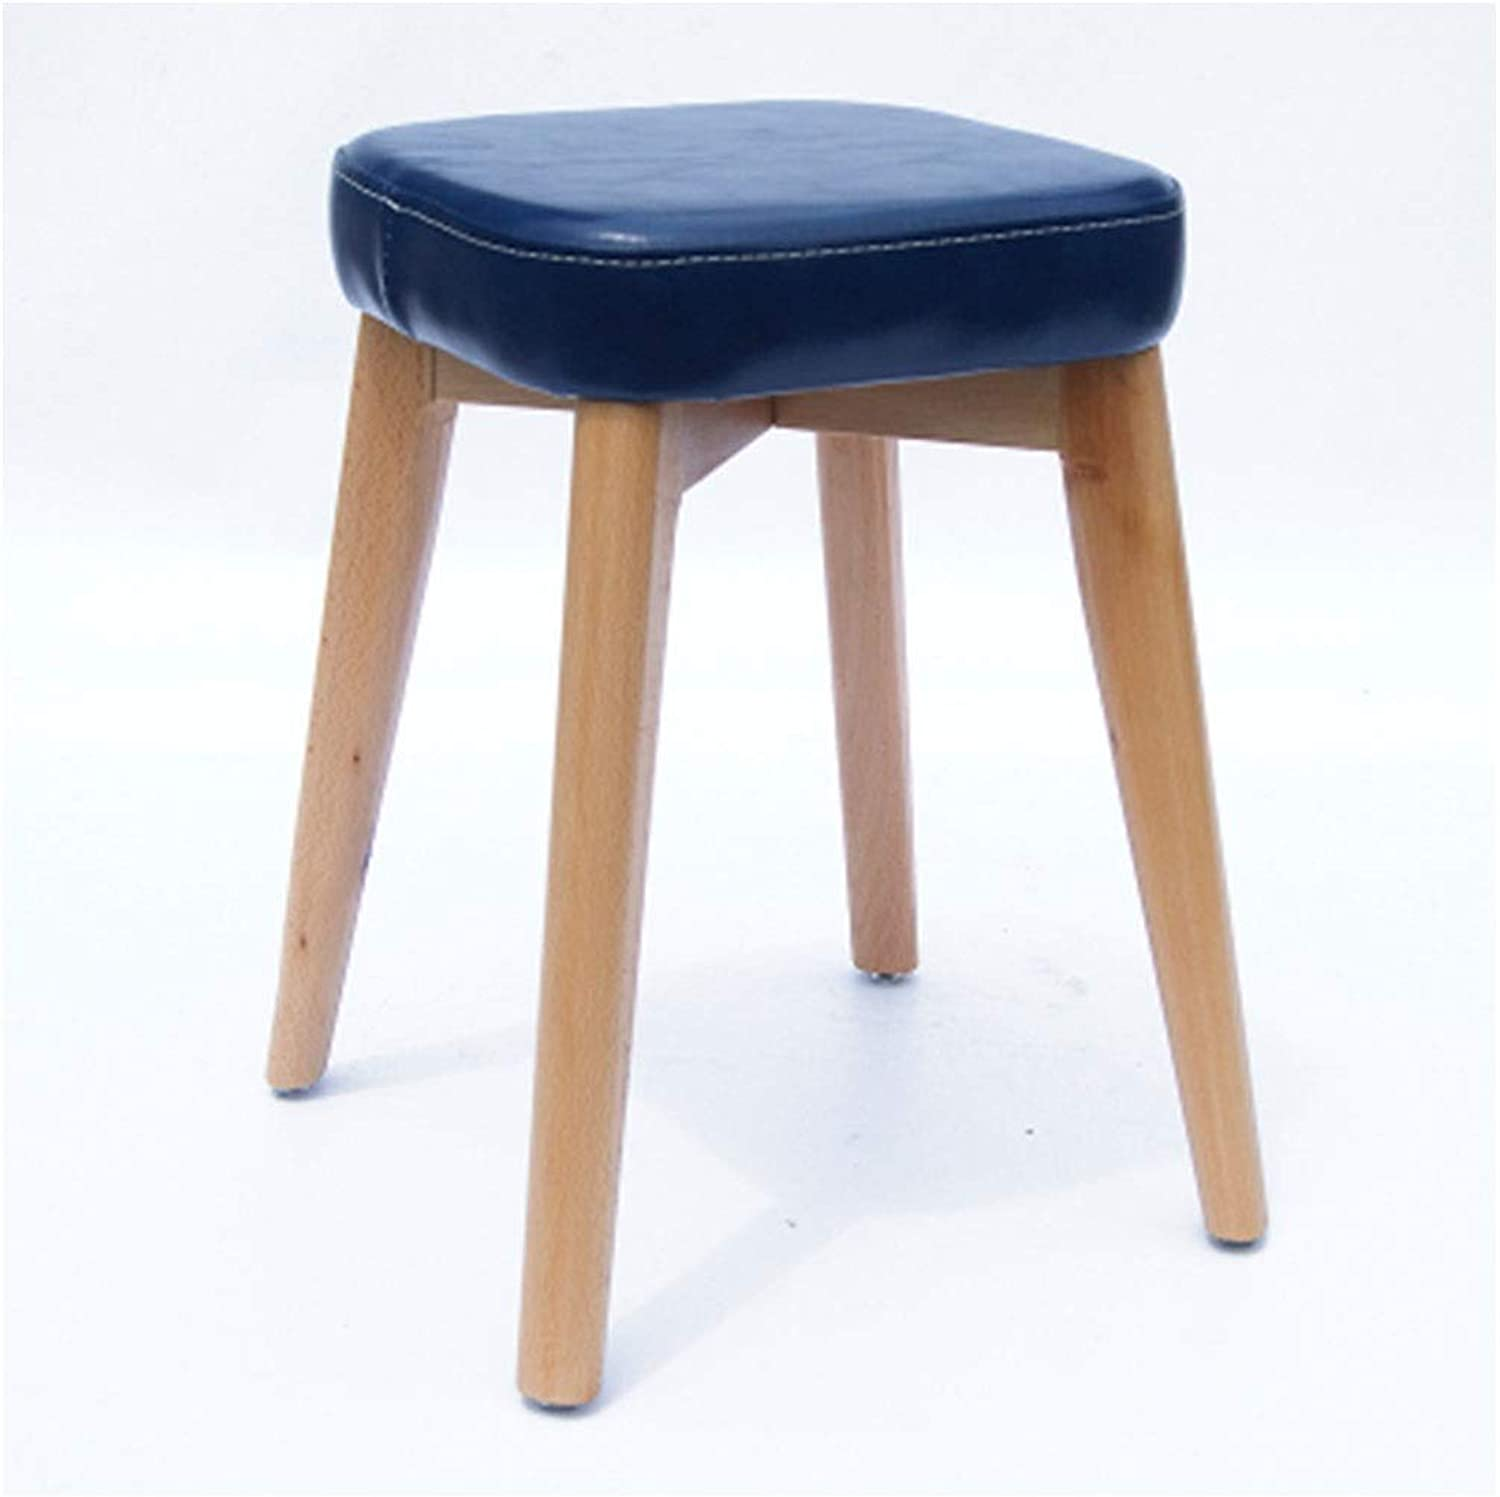 Stools- Wooden Bench- Stackable Storage Solid Wood Stool Small Round Stool Restaurant Home Leather Stool Low Stool Wooden Bench HATHOR-23 (color   I)